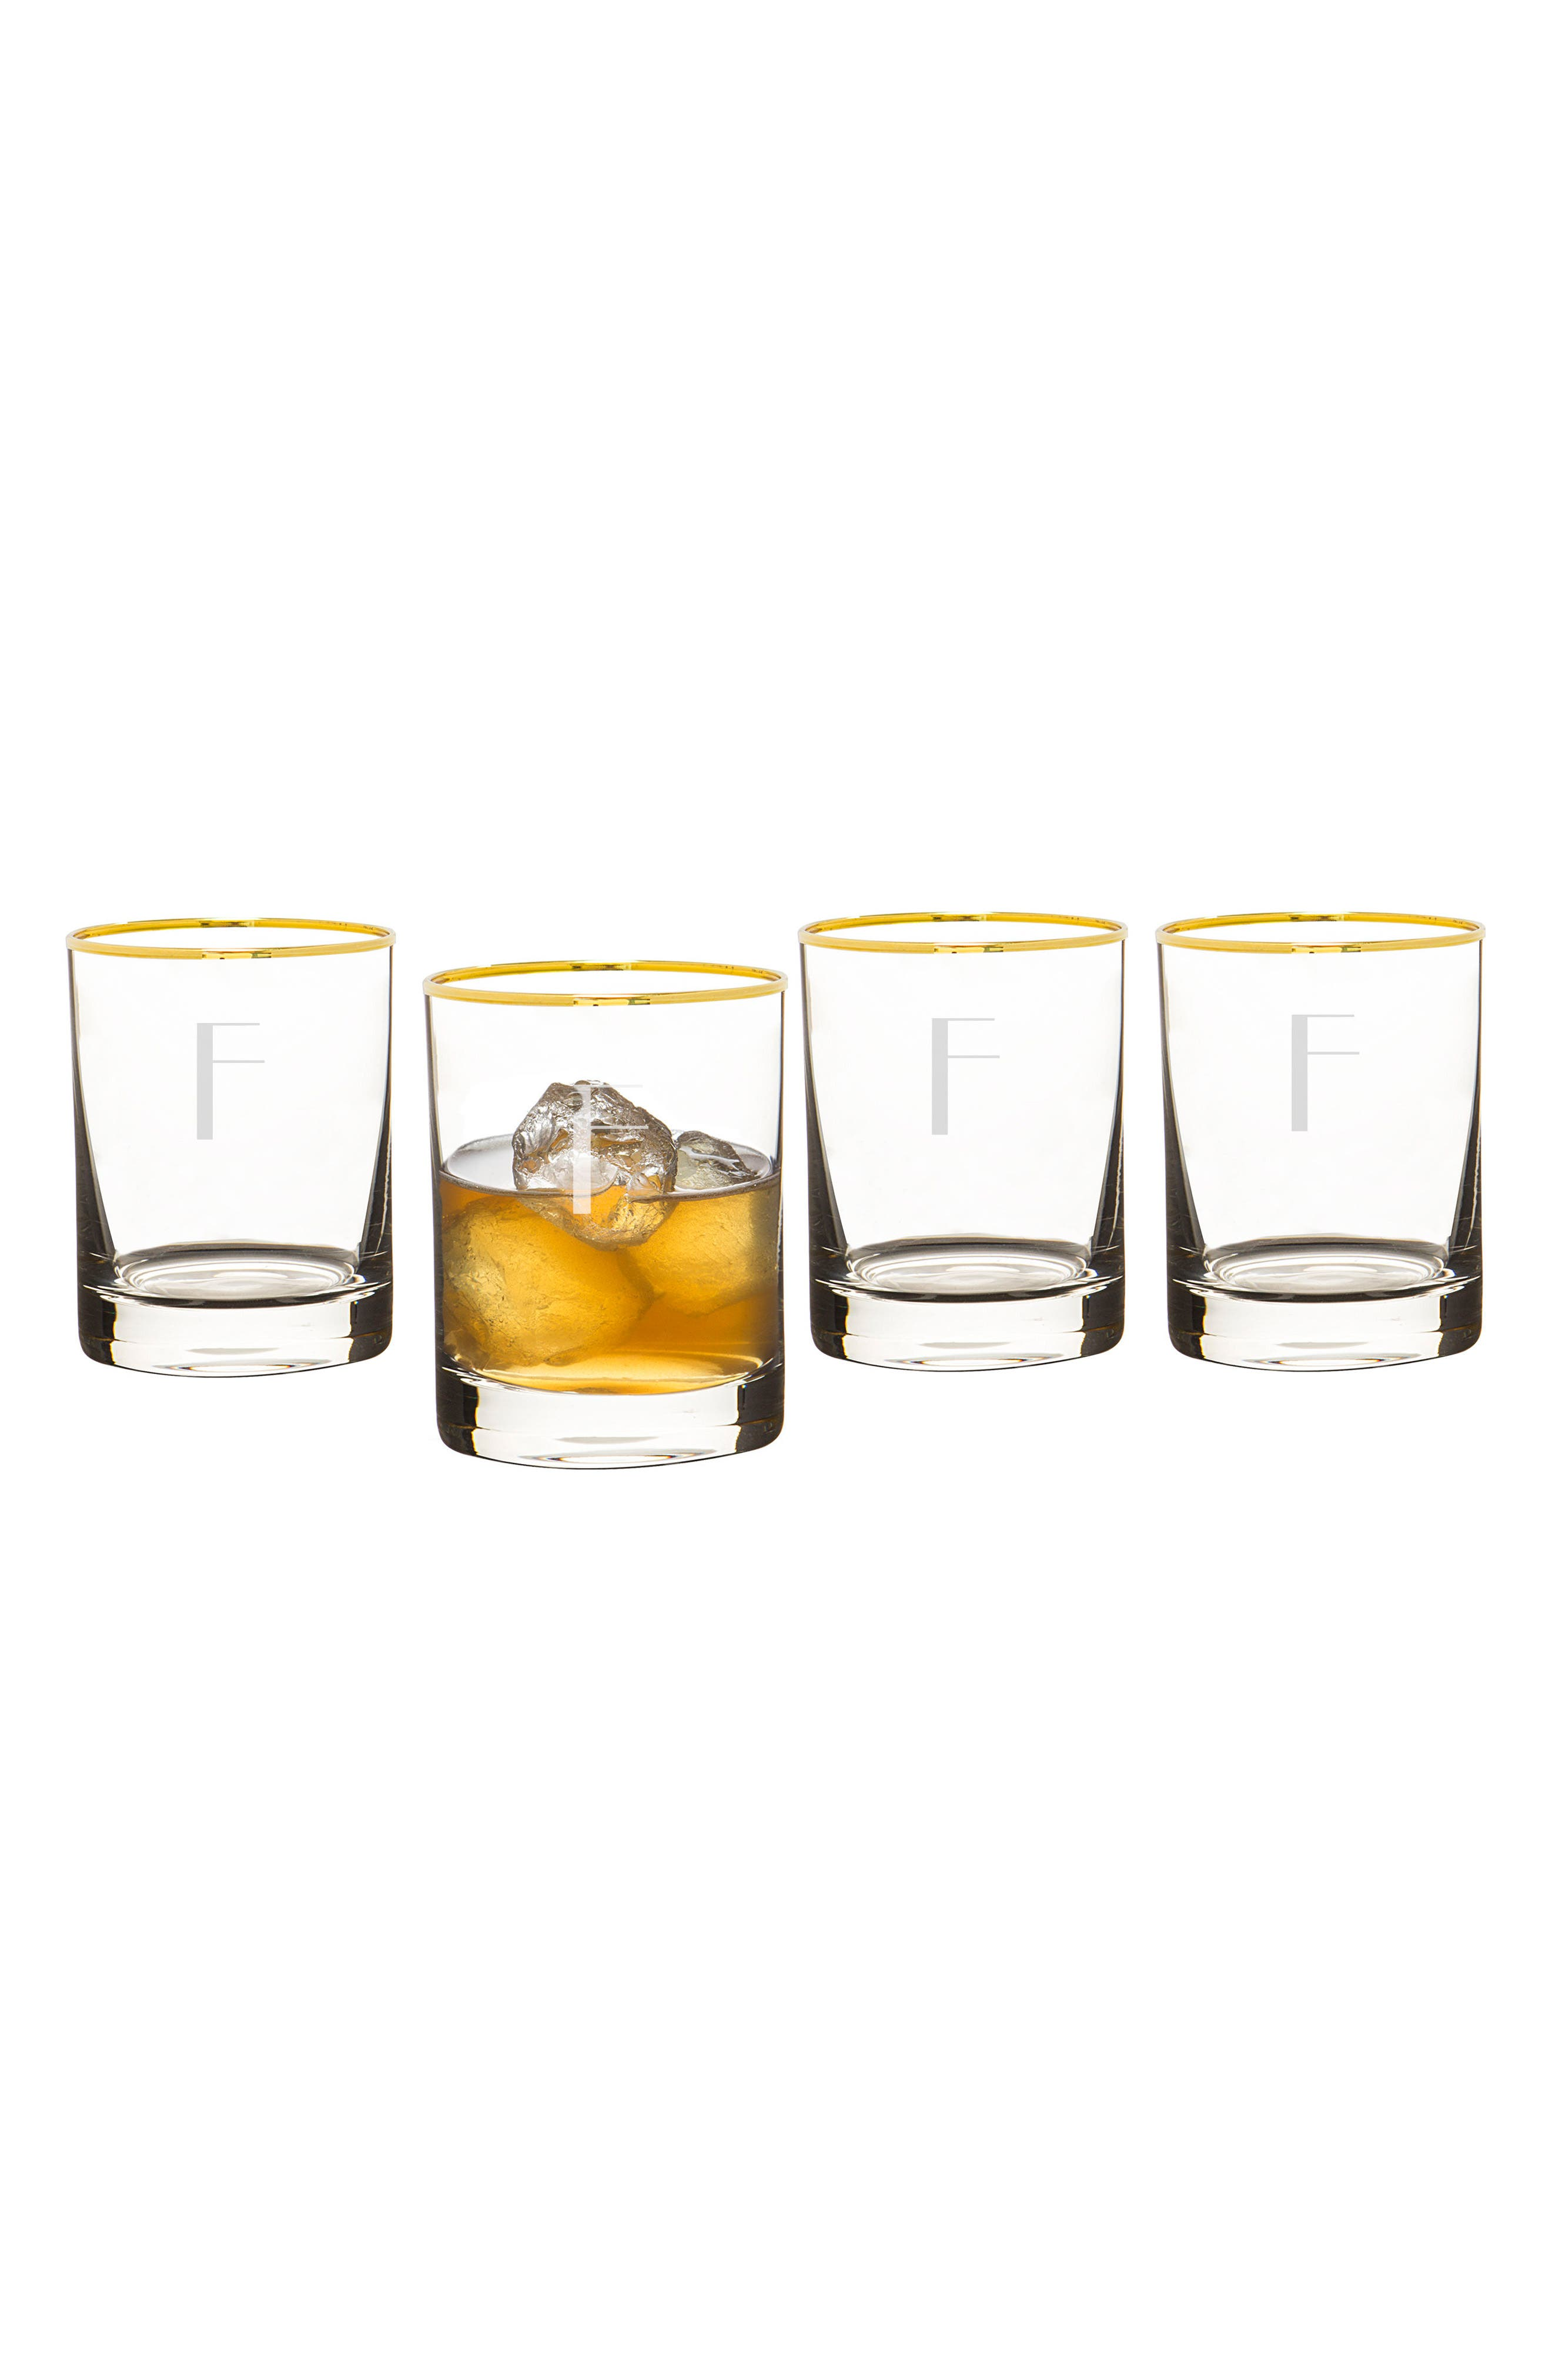 Monogram Set of 4 Double Old Fashioned Glasses,                             Main thumbnail 7, color,